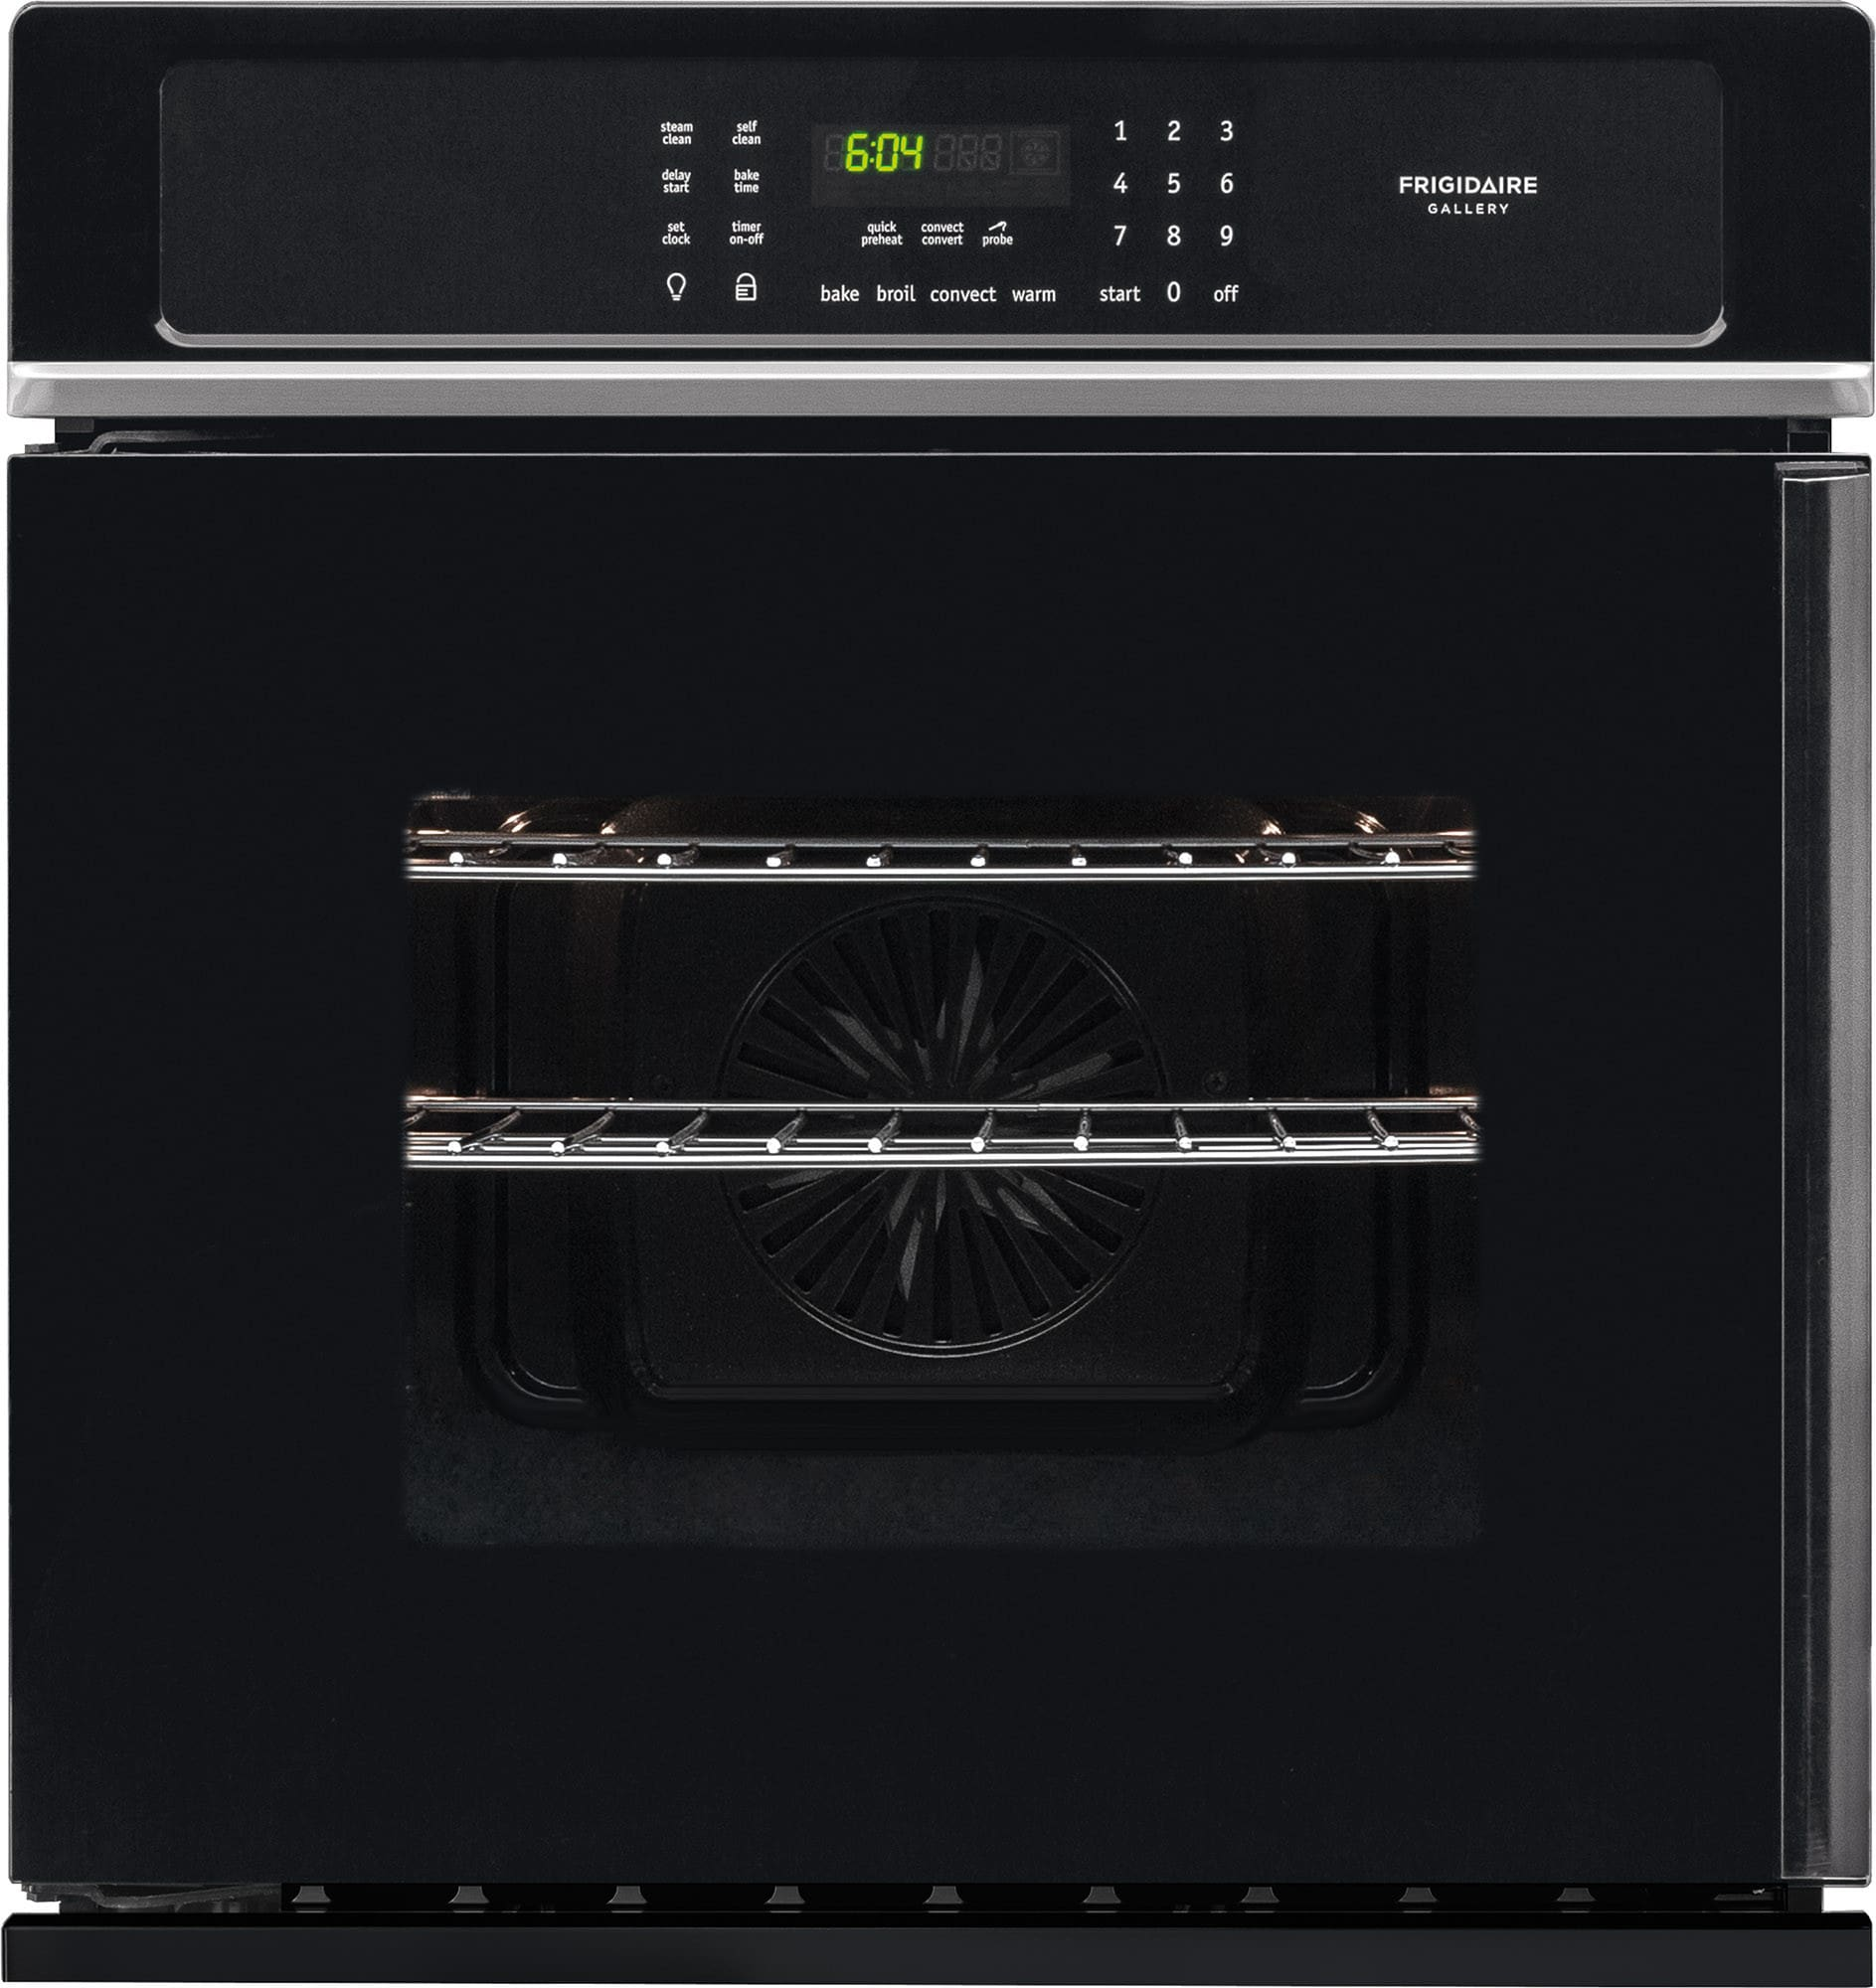 Frigidaire Fgew276spb 27 Inch Single Electric Wall Oven With 3 8 Cu Ft Capacity Side Swing Reversible Door True Convection Express Select Controls